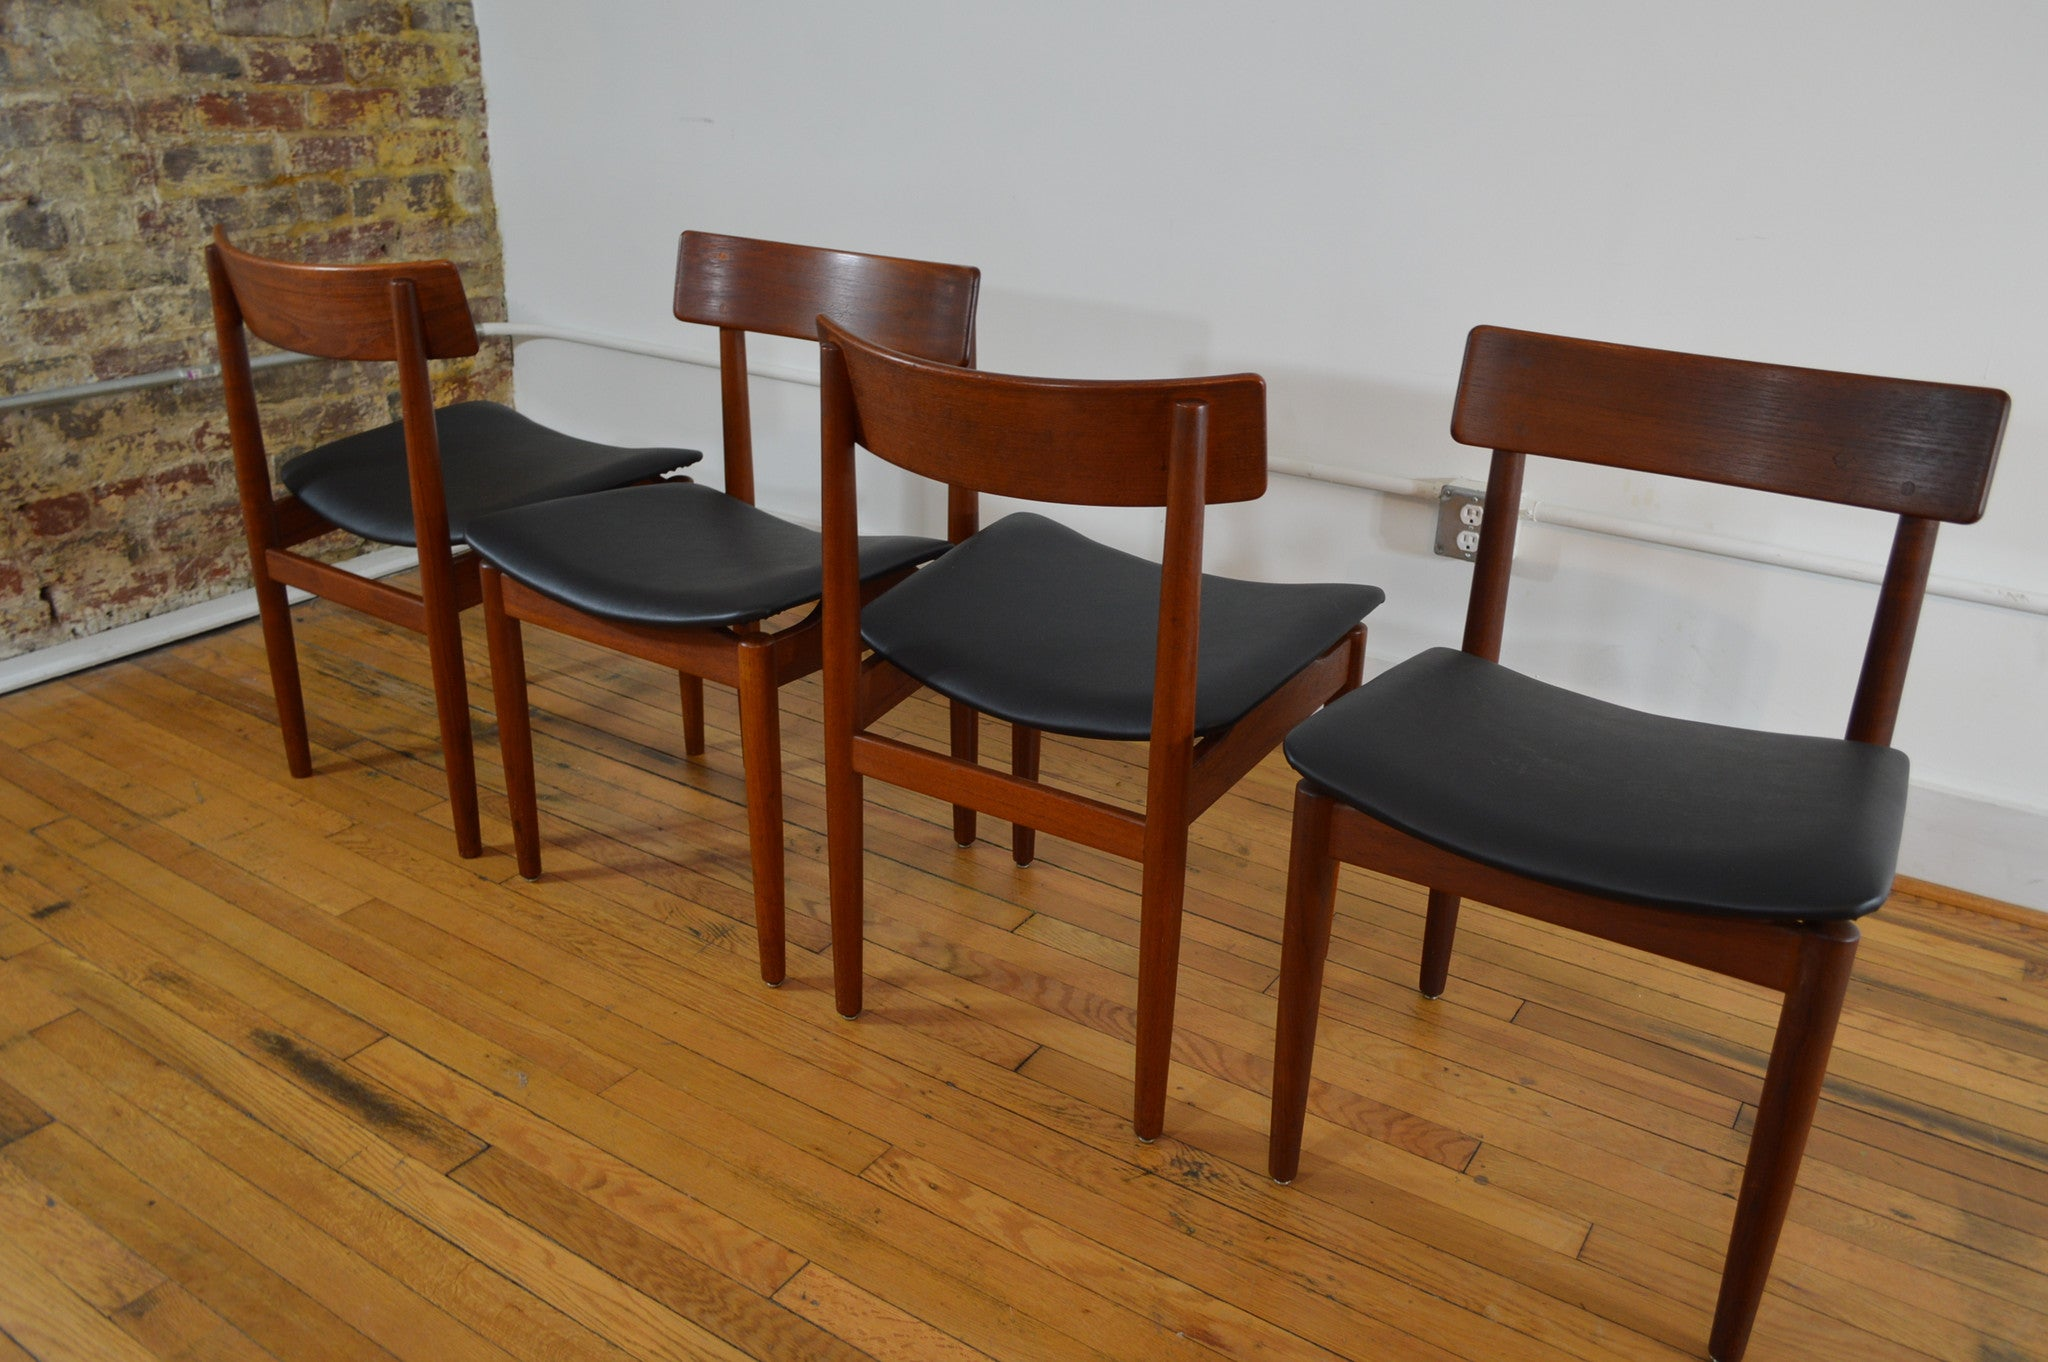 nils jonsson for troeds sweden teak dining chairs set of 4